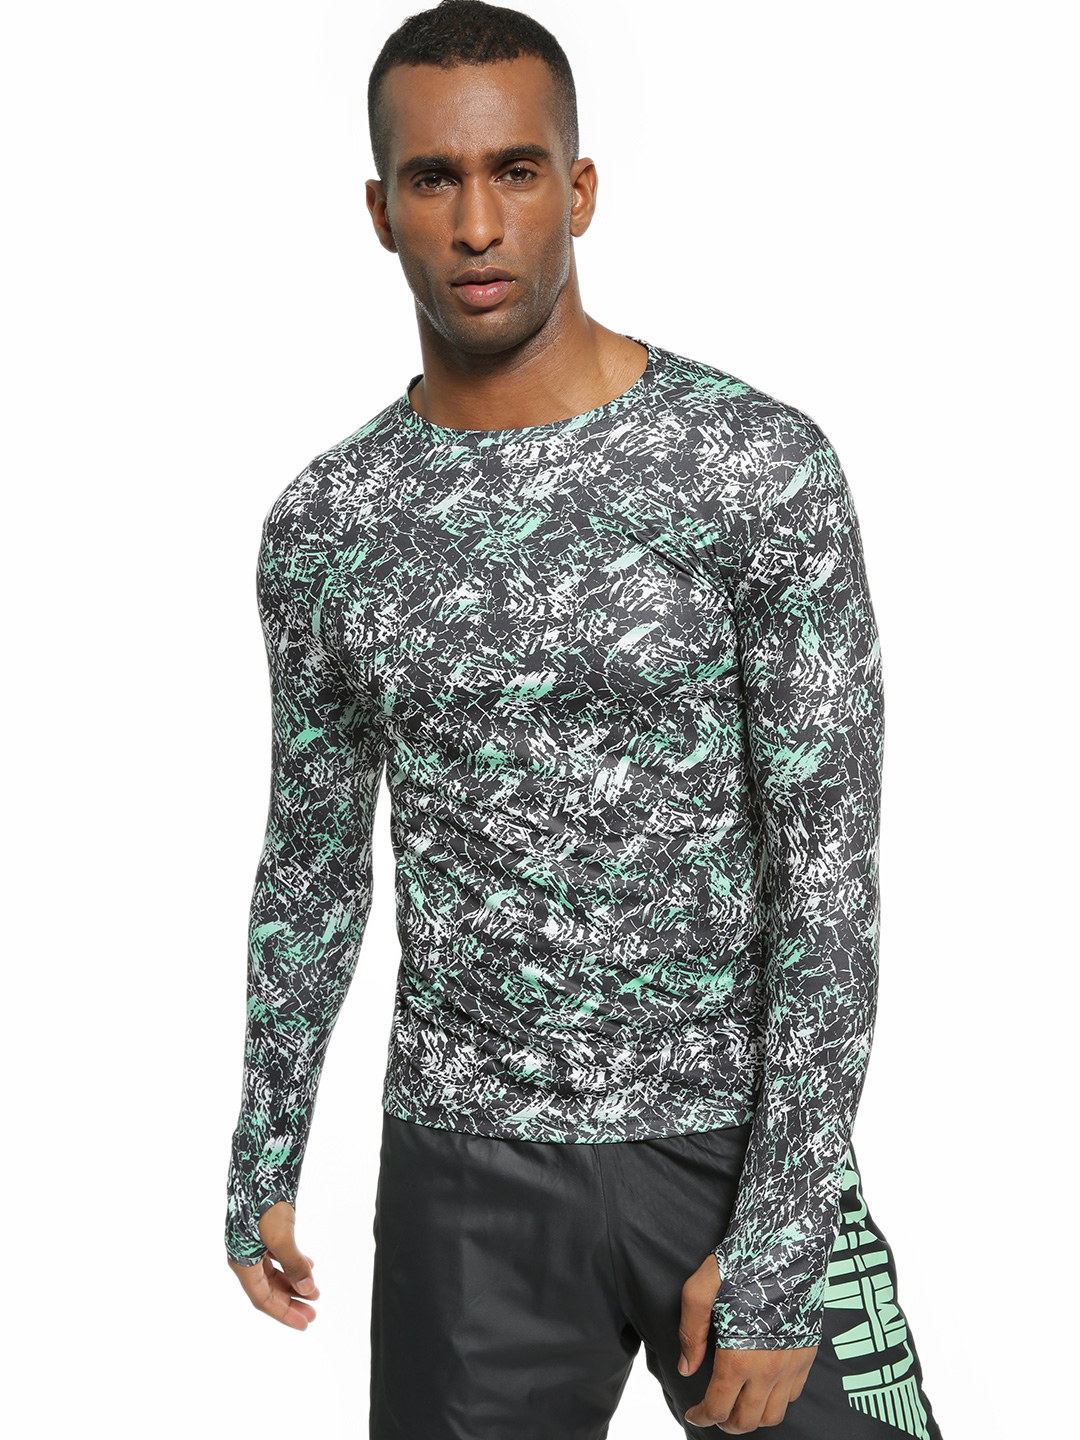 K ACTIVE Multi KOOVS Abstract Print Long Sleeve T-Shirt 1